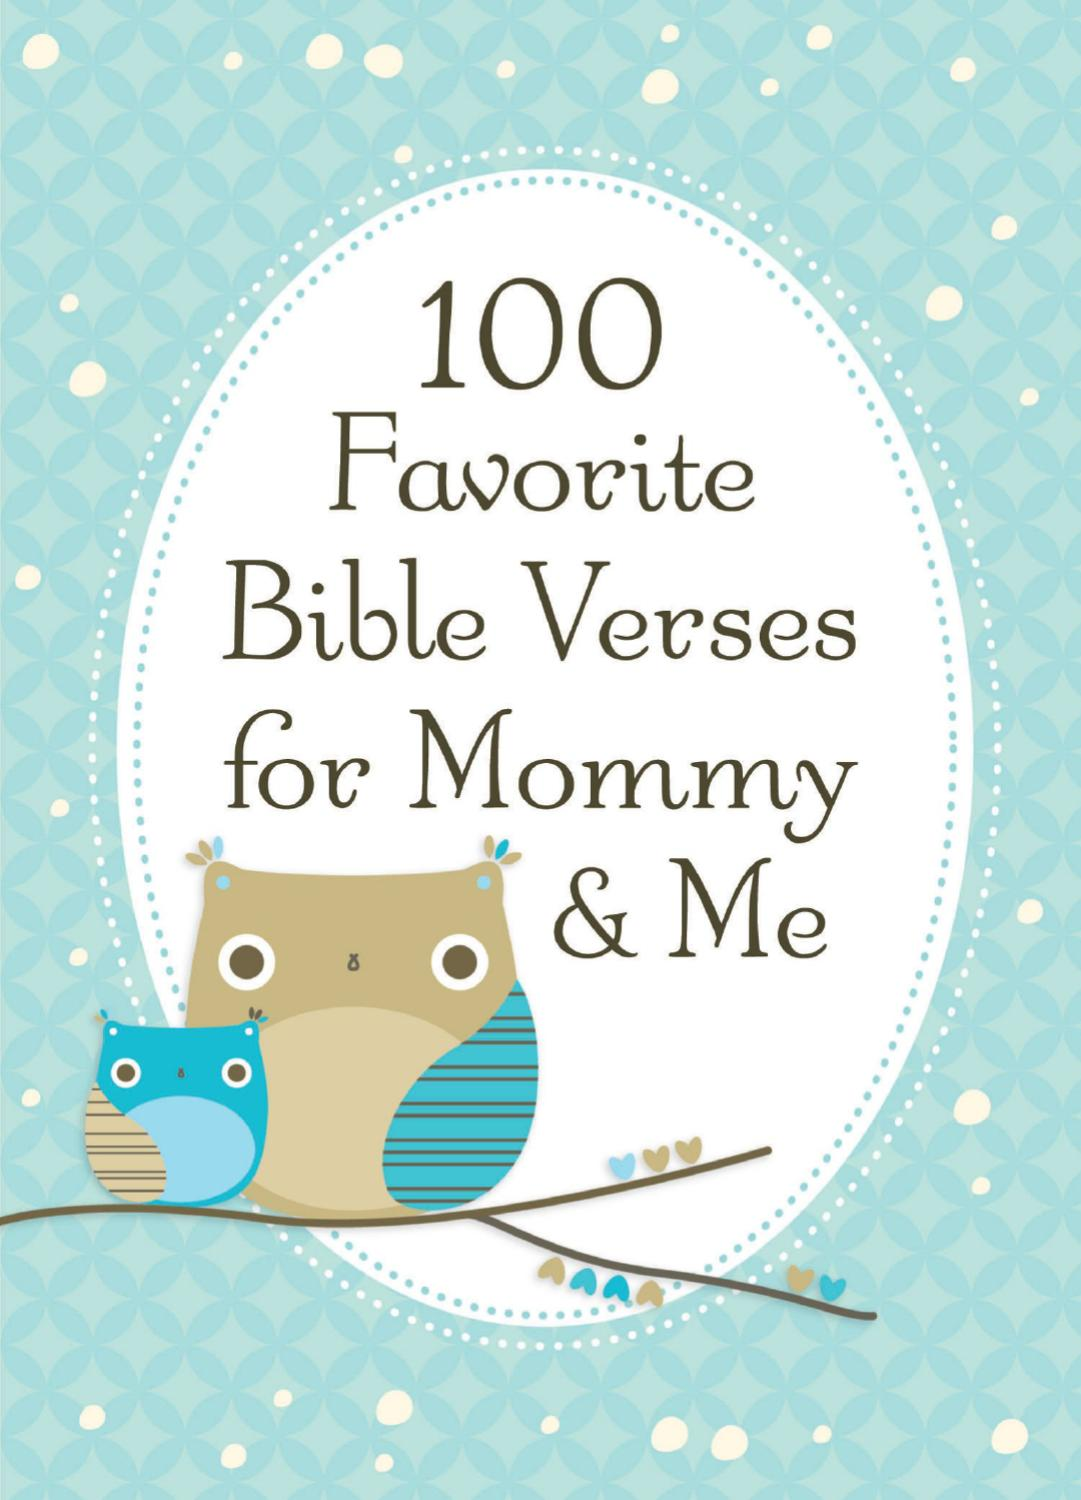 100 Favorite Bible Verses for Mommy and Me by Thomas Nelson